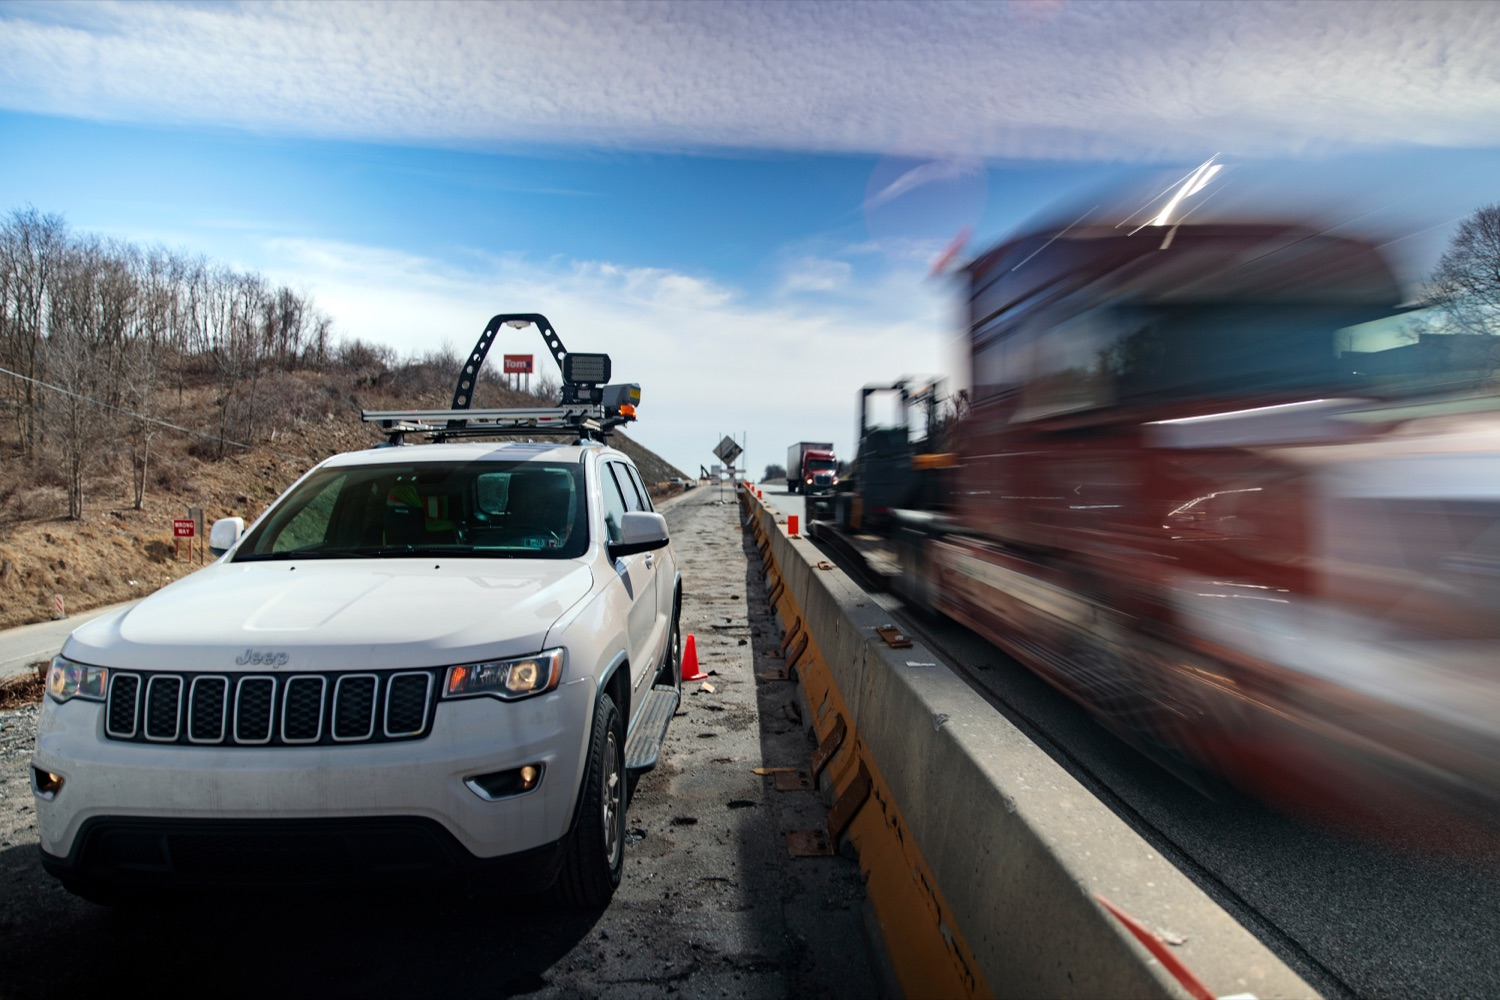 """<a href=""""https://filesource.wostreaming.net/commonwealthofpa/photo/17774_PennDOT_AWZSE_NK_002.JPG"""" target=""""_blank"""">⇣Download Photo<br></a>Pennsylvanias AWZSE program uses vehicle-mounted systems to detect and record motorists exceeding posted work zone speed limits by 11 miles per hour or more using electronic speed timing devices. AWZSE systems are only operational in active work zones where workers are present. Beginning today, registered owners will receive a warning letter for a first offense, a violation notice and $75 fine for a second offense, and a violation notice and $150 fine for third and subsequent offenses. These violations are civil penalties only; no points will be assessed to drivers licenses."""